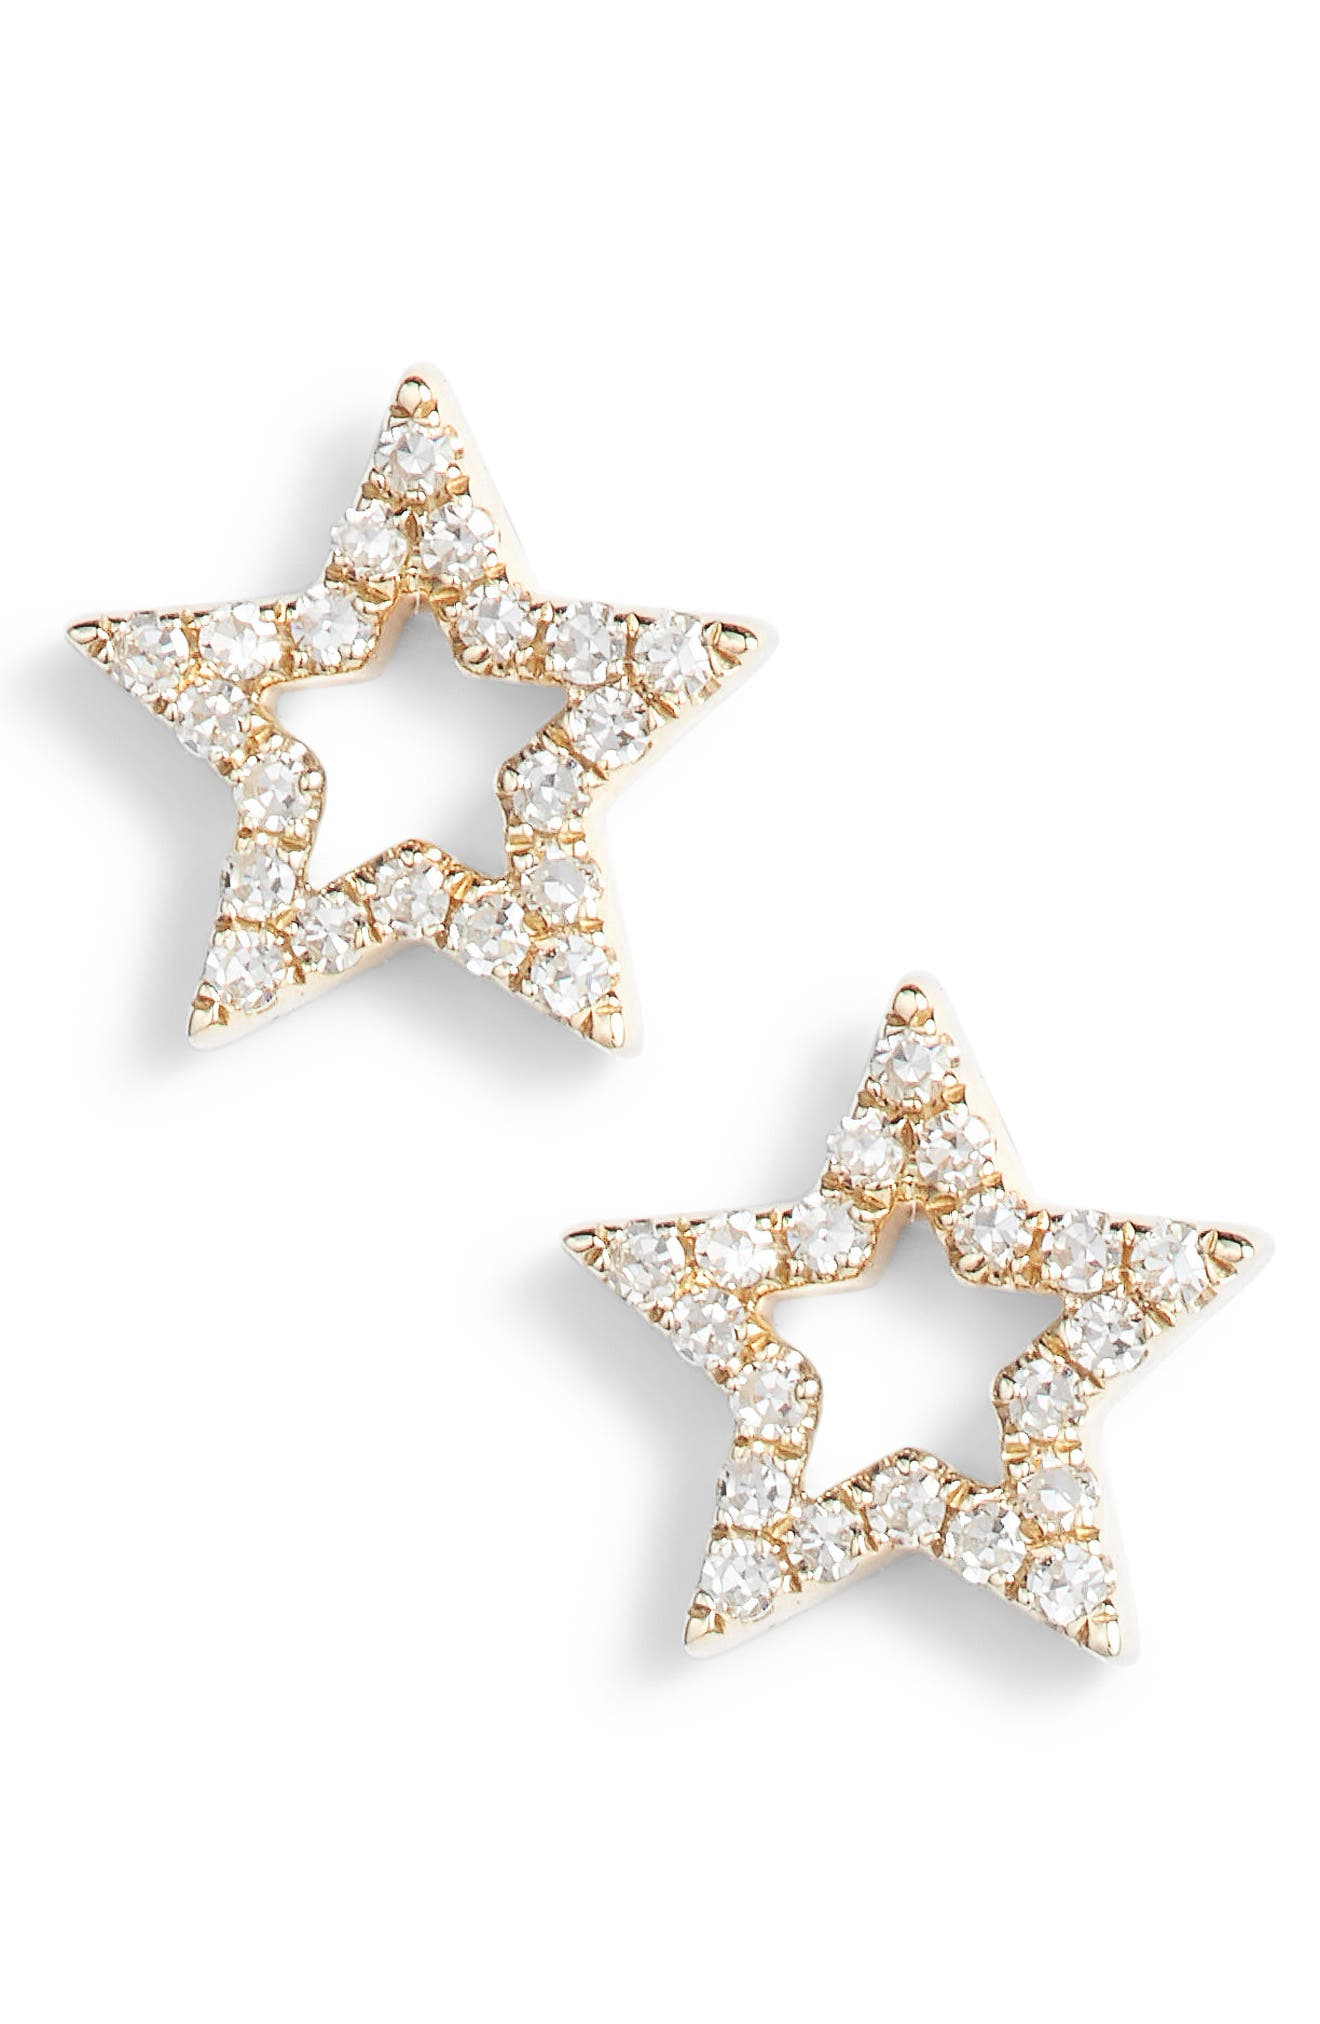 Open Star Diamond Stud Earrings,                             Main thumbnail 1, color,                             YELLOW GOLD